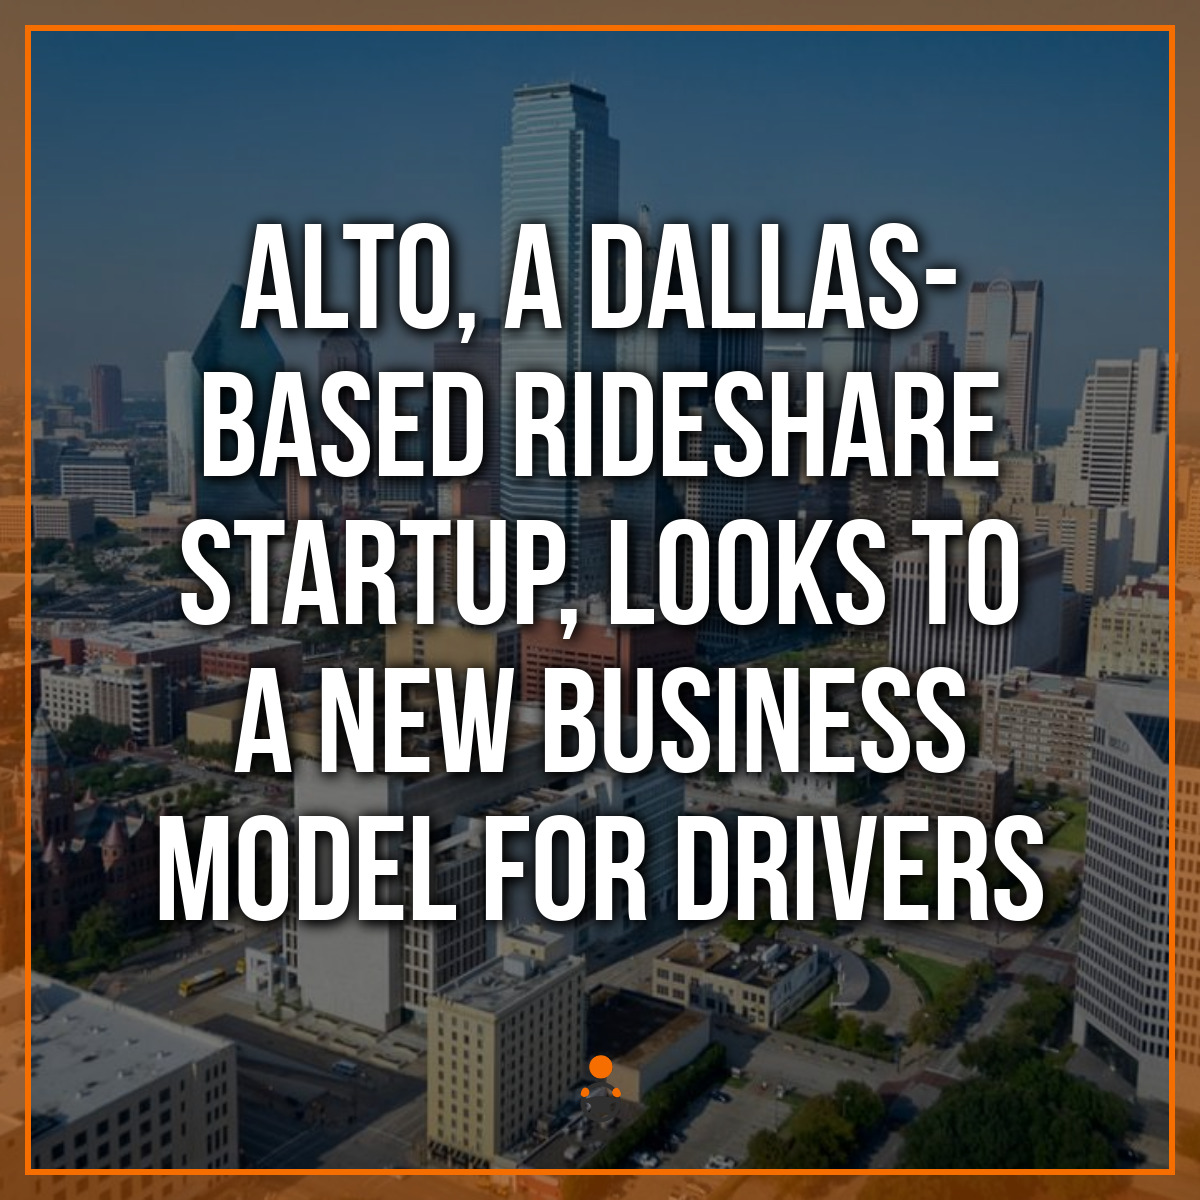 Alto, a Dallas-Based Rideshare Startup, Looks to a New Business Model for Drivers